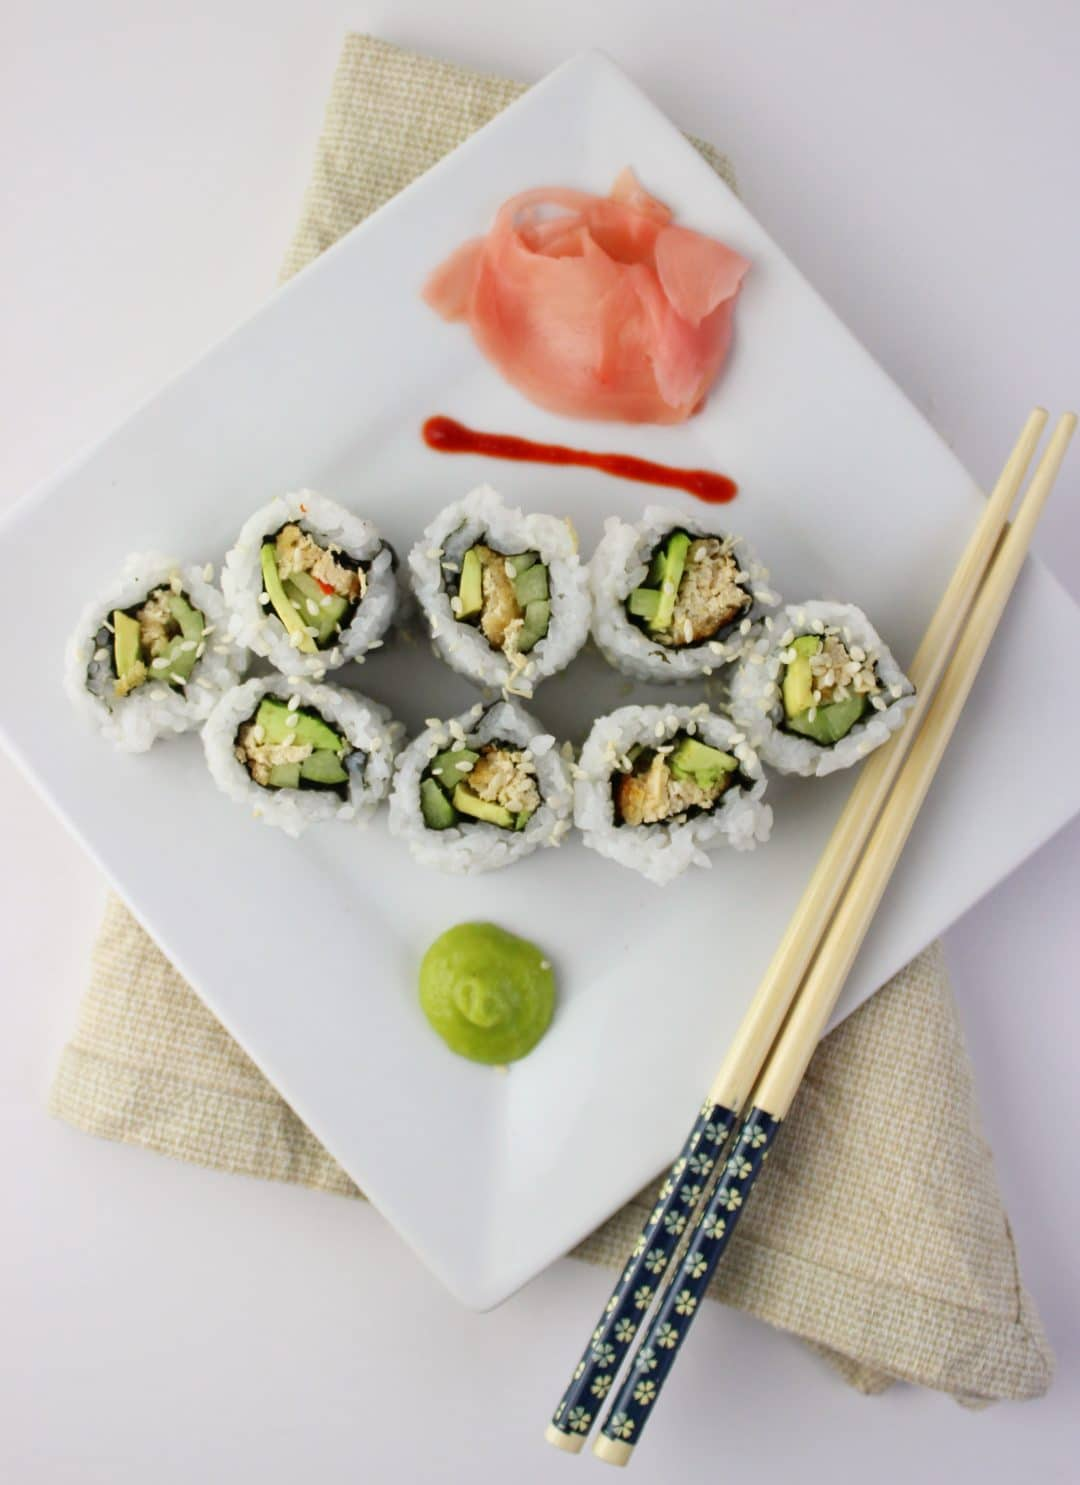 Vegan Sushi -Food Blogger Simply LaKita shares a vegan version of a California Roll. This recipe is so easy to make with the help of Gardein Crabless Cakes. simplylakita.com #vegan #sushi